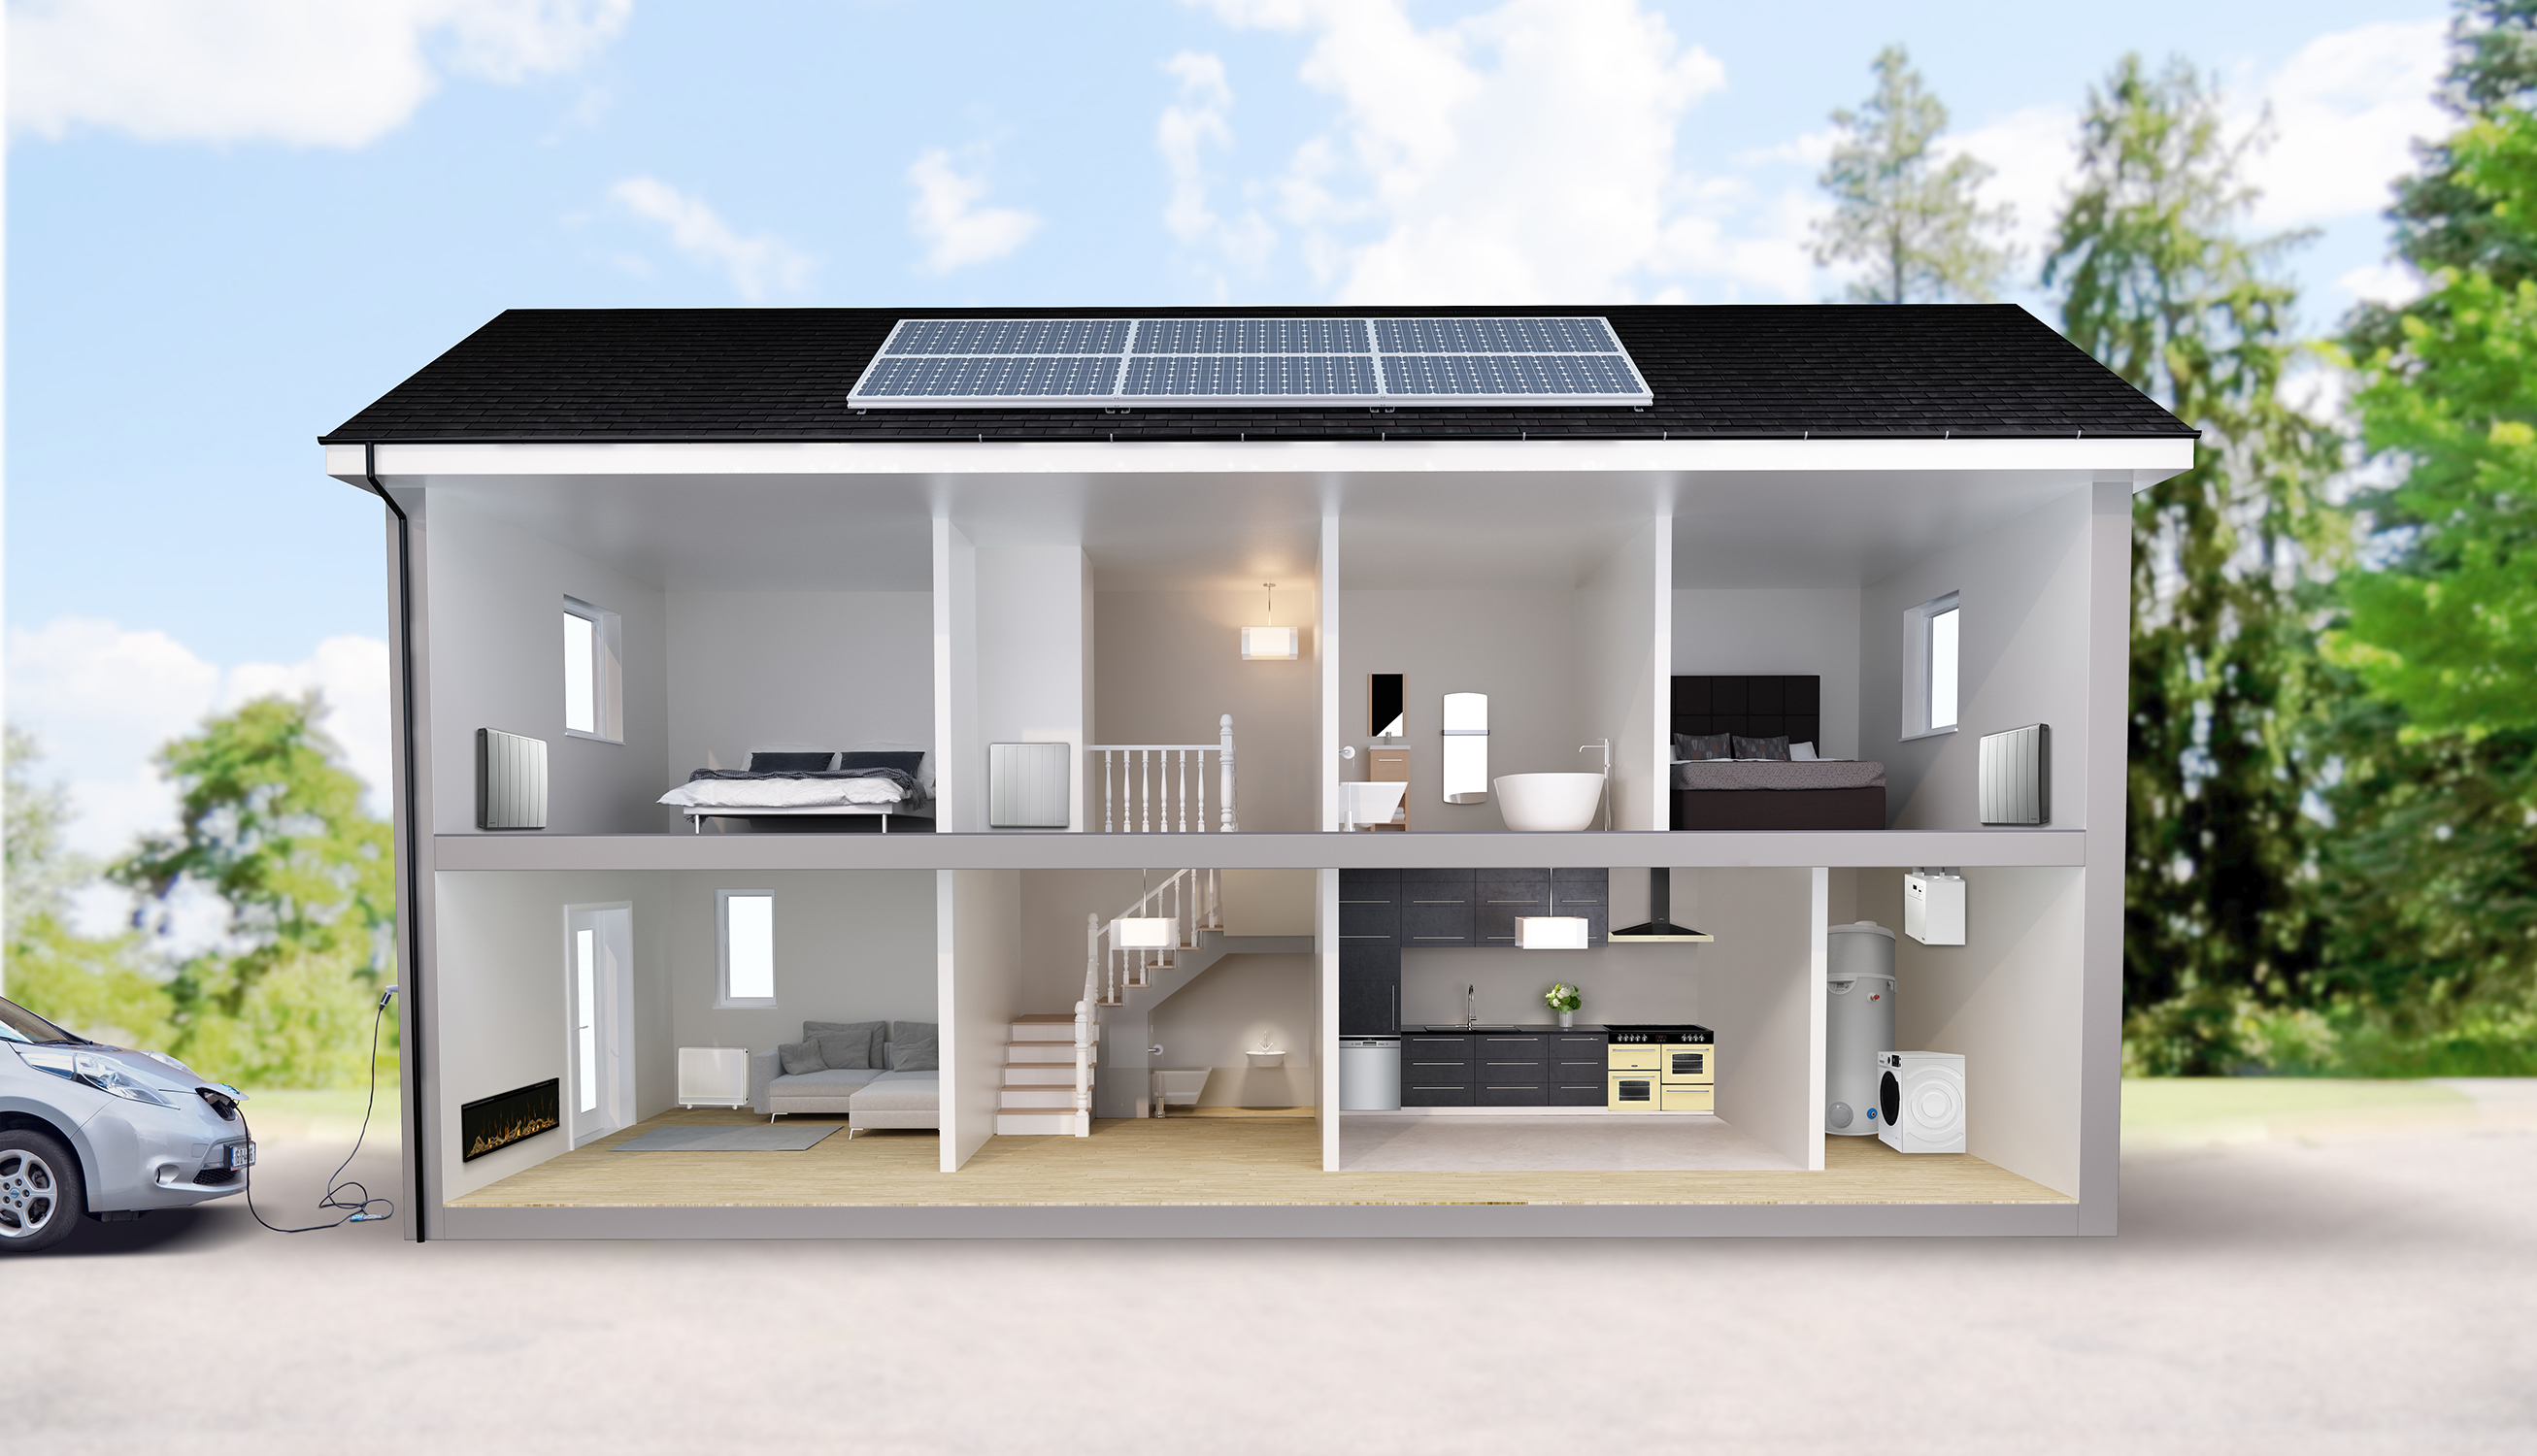 renewable energy sources glen dimplex